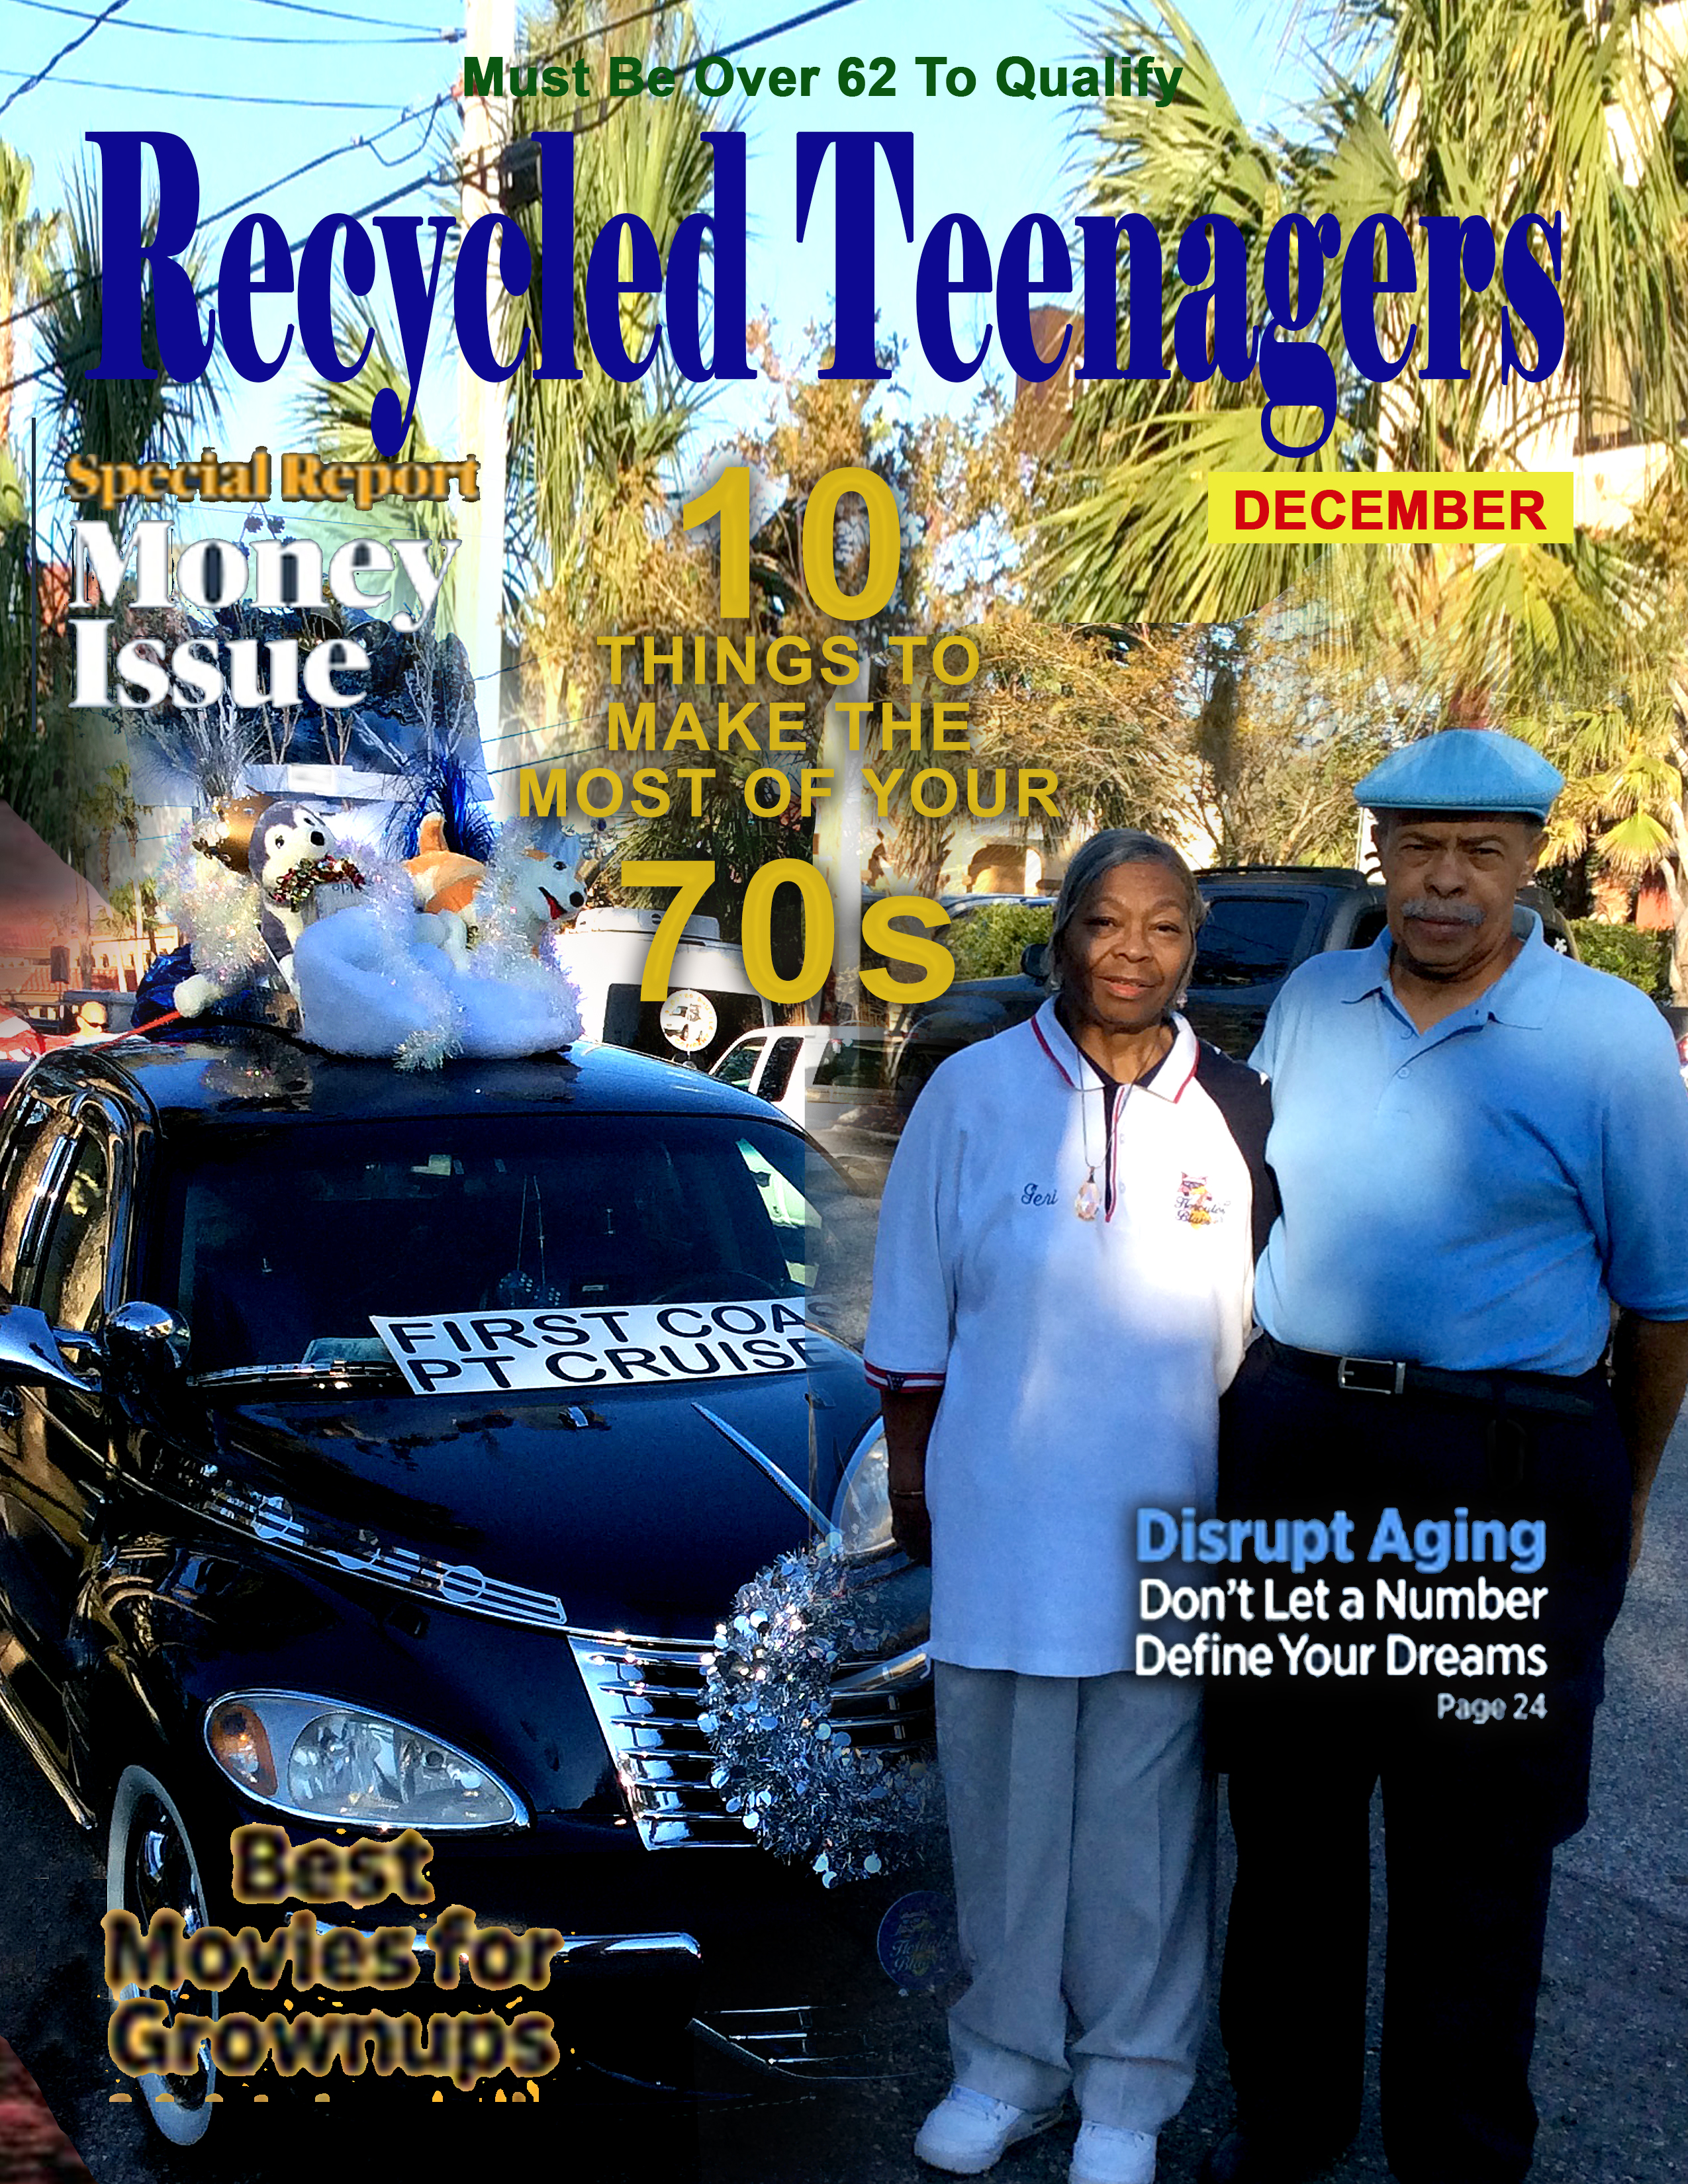 Recycled Teenagers_St_Augustine_Christmas_Parade